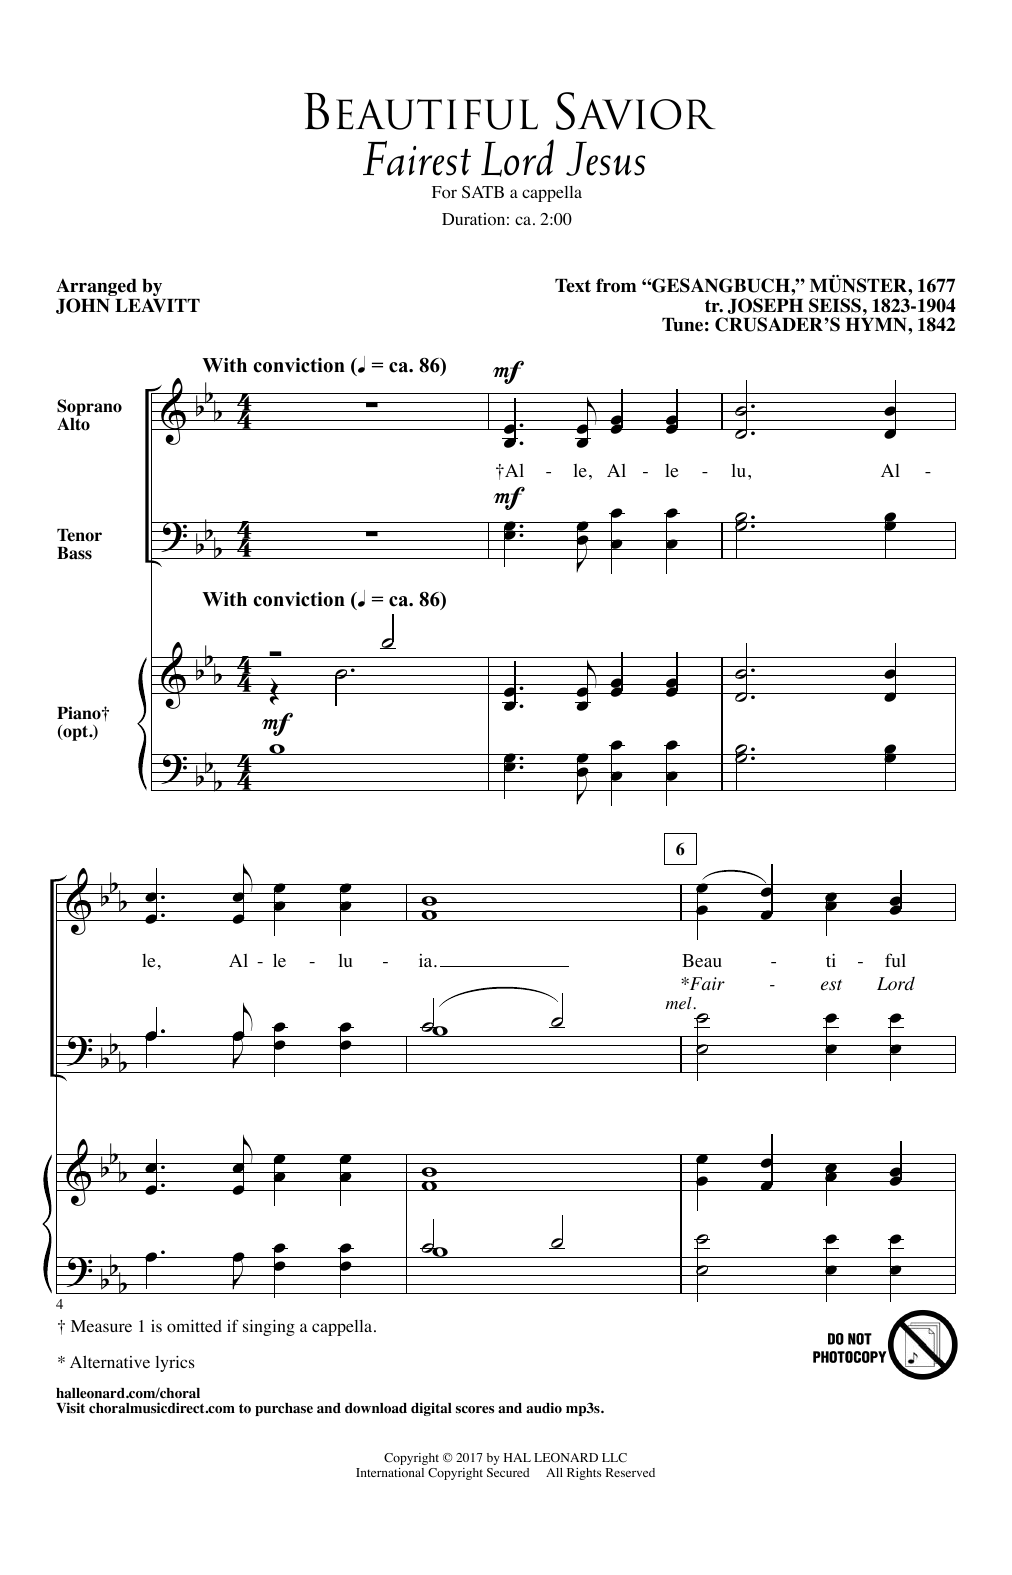 Sheet music digital files to print licensed musterisch beautiful savior hexwebz Choice Image